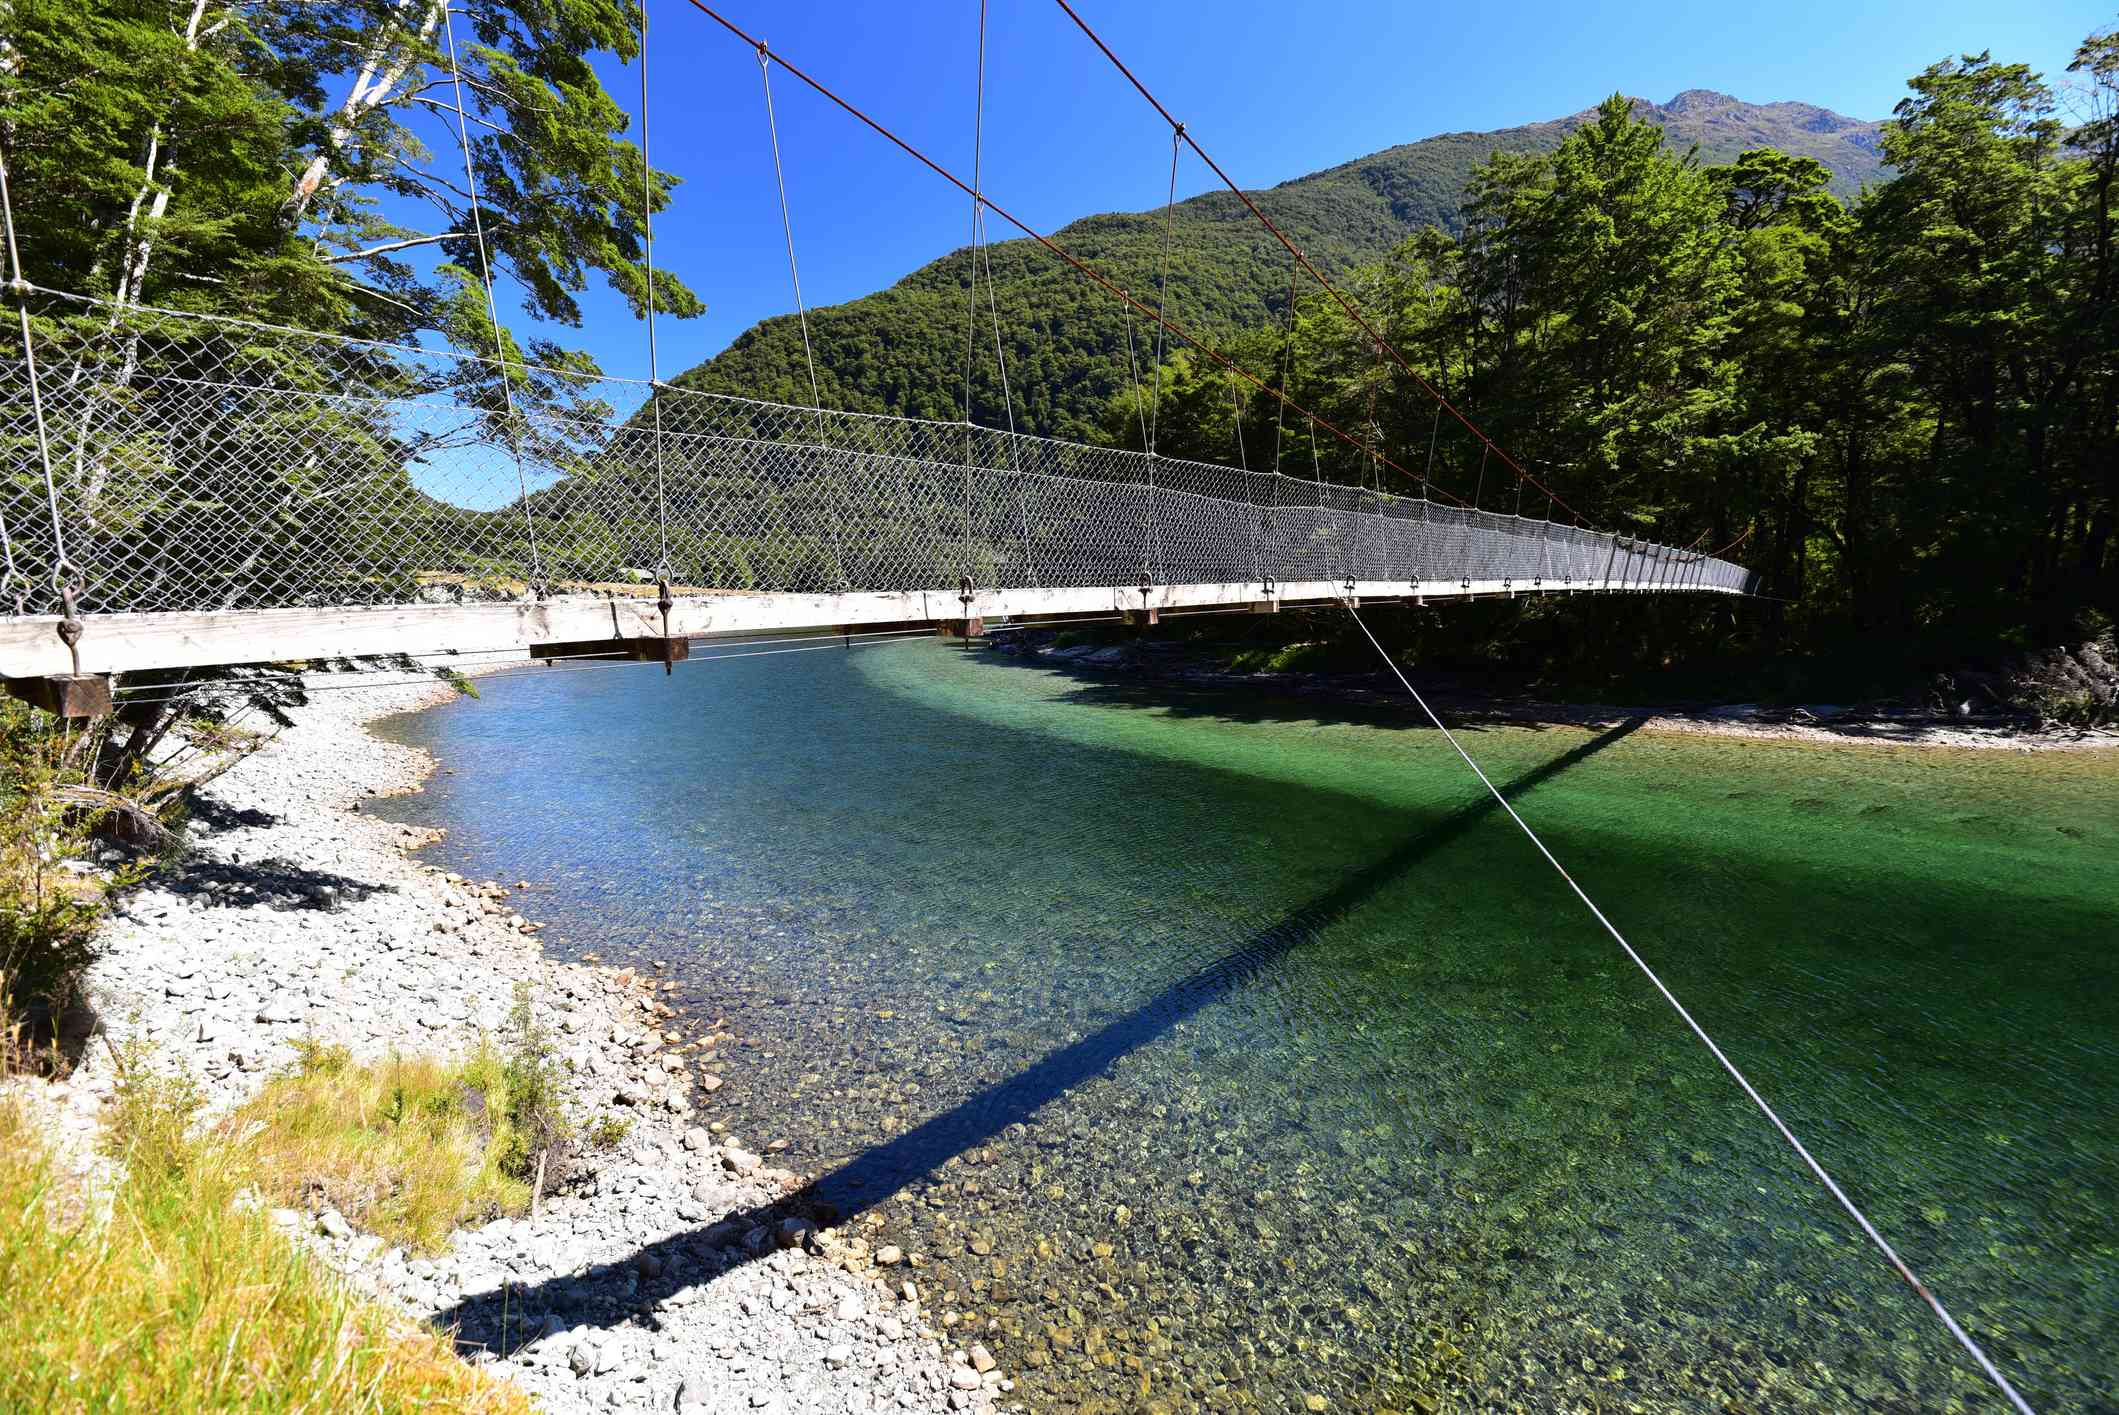 Part of Milford Track: A suspension bridge over the Clinton River, a narrow river with lush, green trees on both sides and mountains and blue sky in the distance